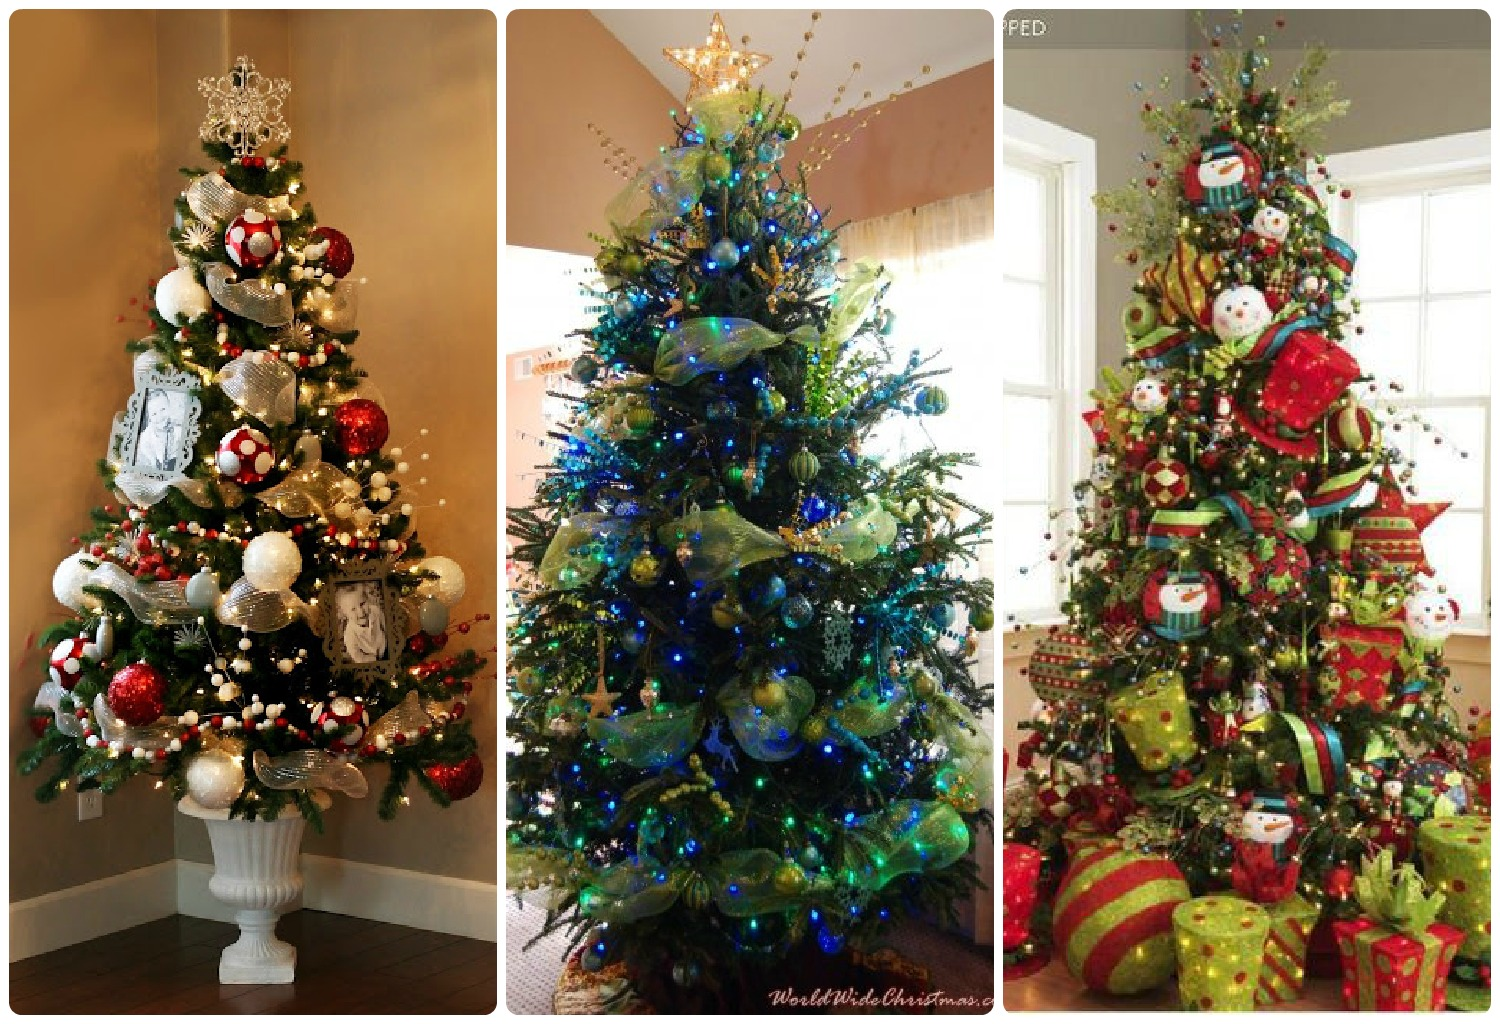 It's Just Me: Oh Christmas Tree